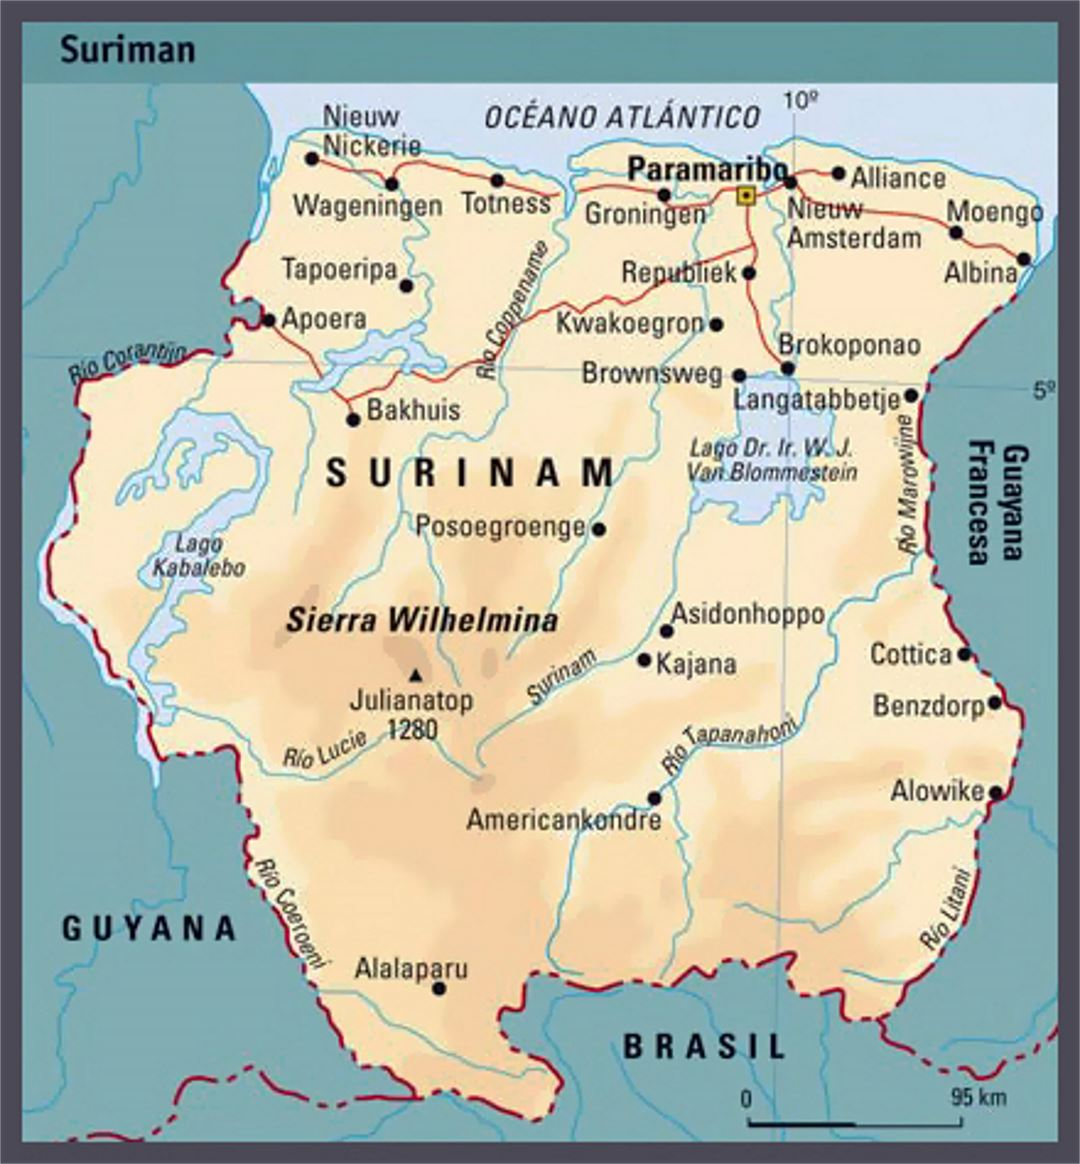 Elevation map of Suriname